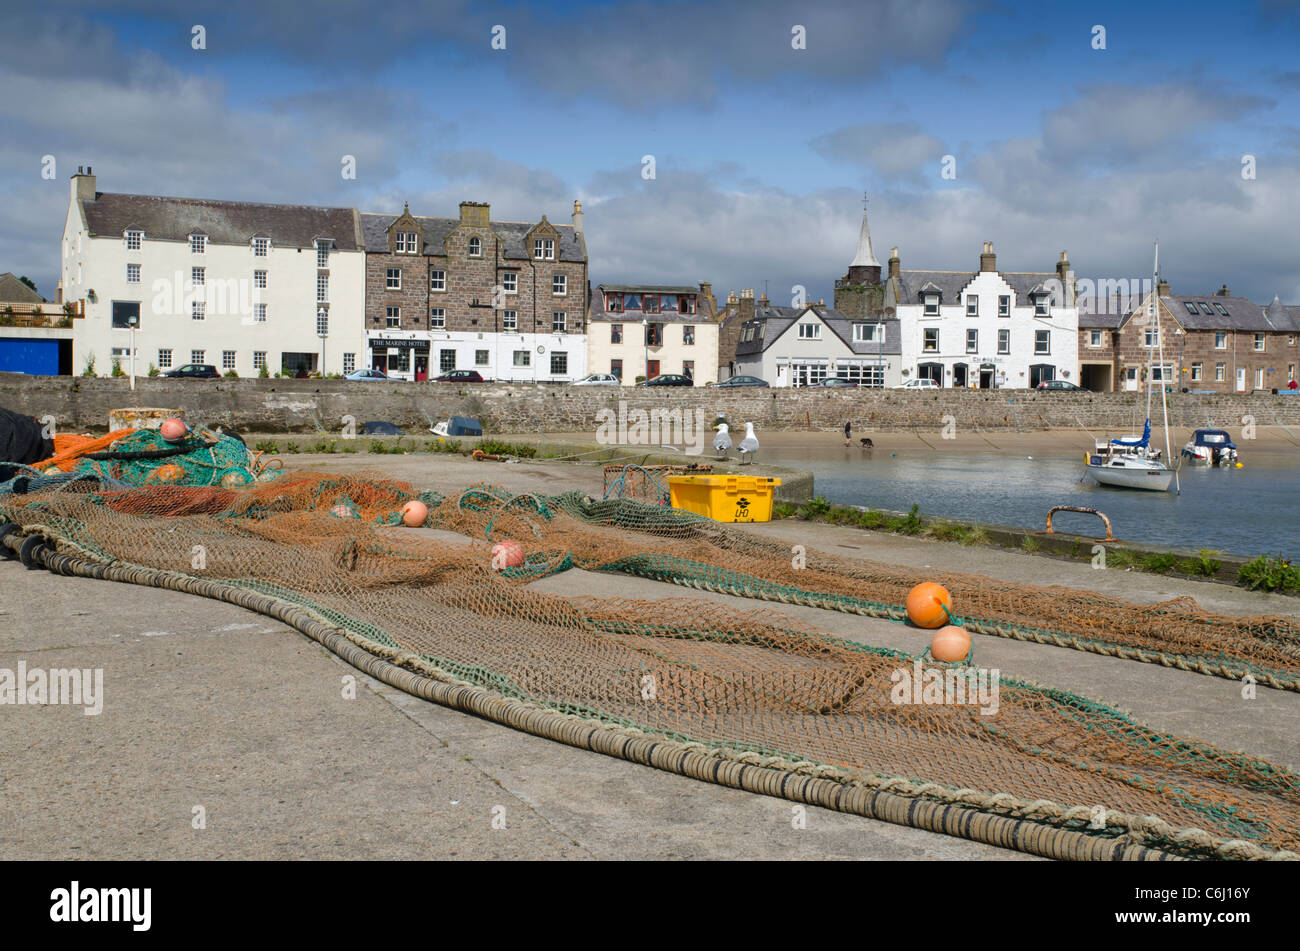 Fishing nets strewn in harbour at Stonehaven - Kincardienshire - Stock Image